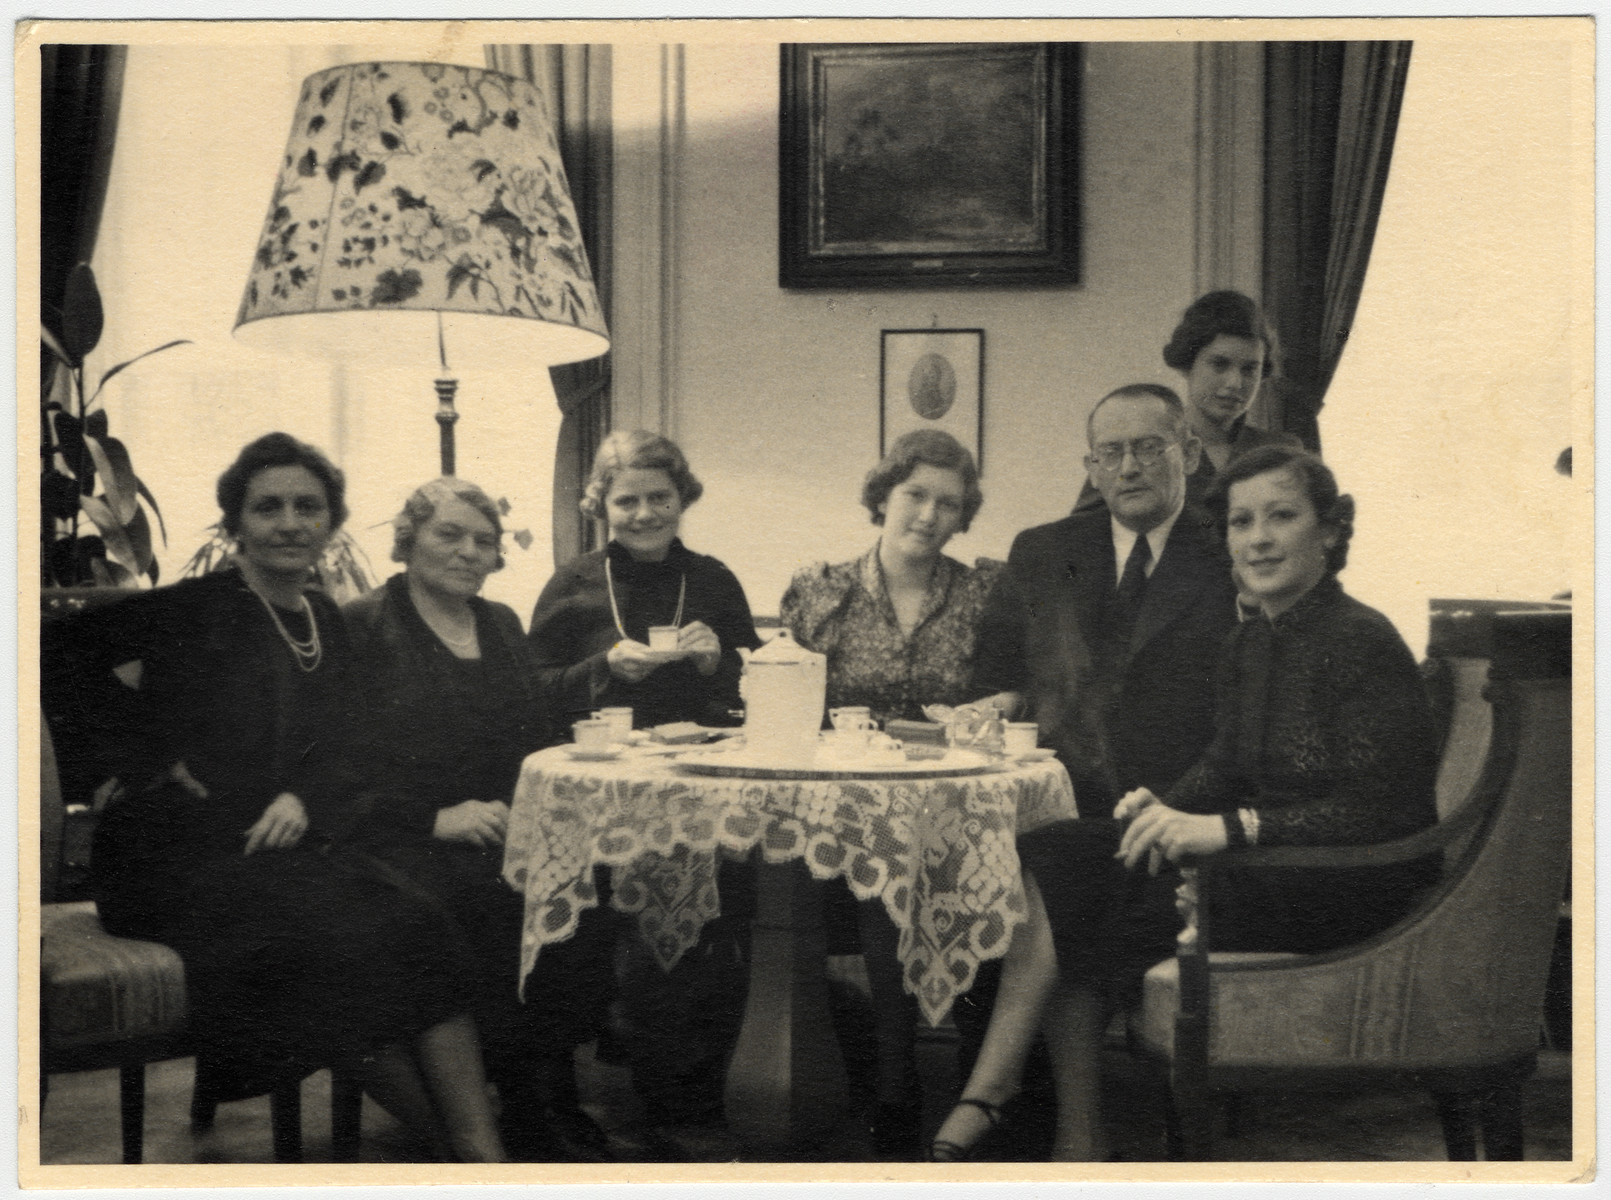 A Jewish family in Czechoslovakia poses by a table laden with coffee cups on the wedding day of their daughter, Lotte Aldor (the cousin of the donor).  Pictured from left to right are Marianne Aldor (the mother of the bride), Gusti Aldor, Emmy Aldor (sister of Marianne), Lotte Aldor, Robert Ayer, Mimi (Lotte's sister) and unidentified.